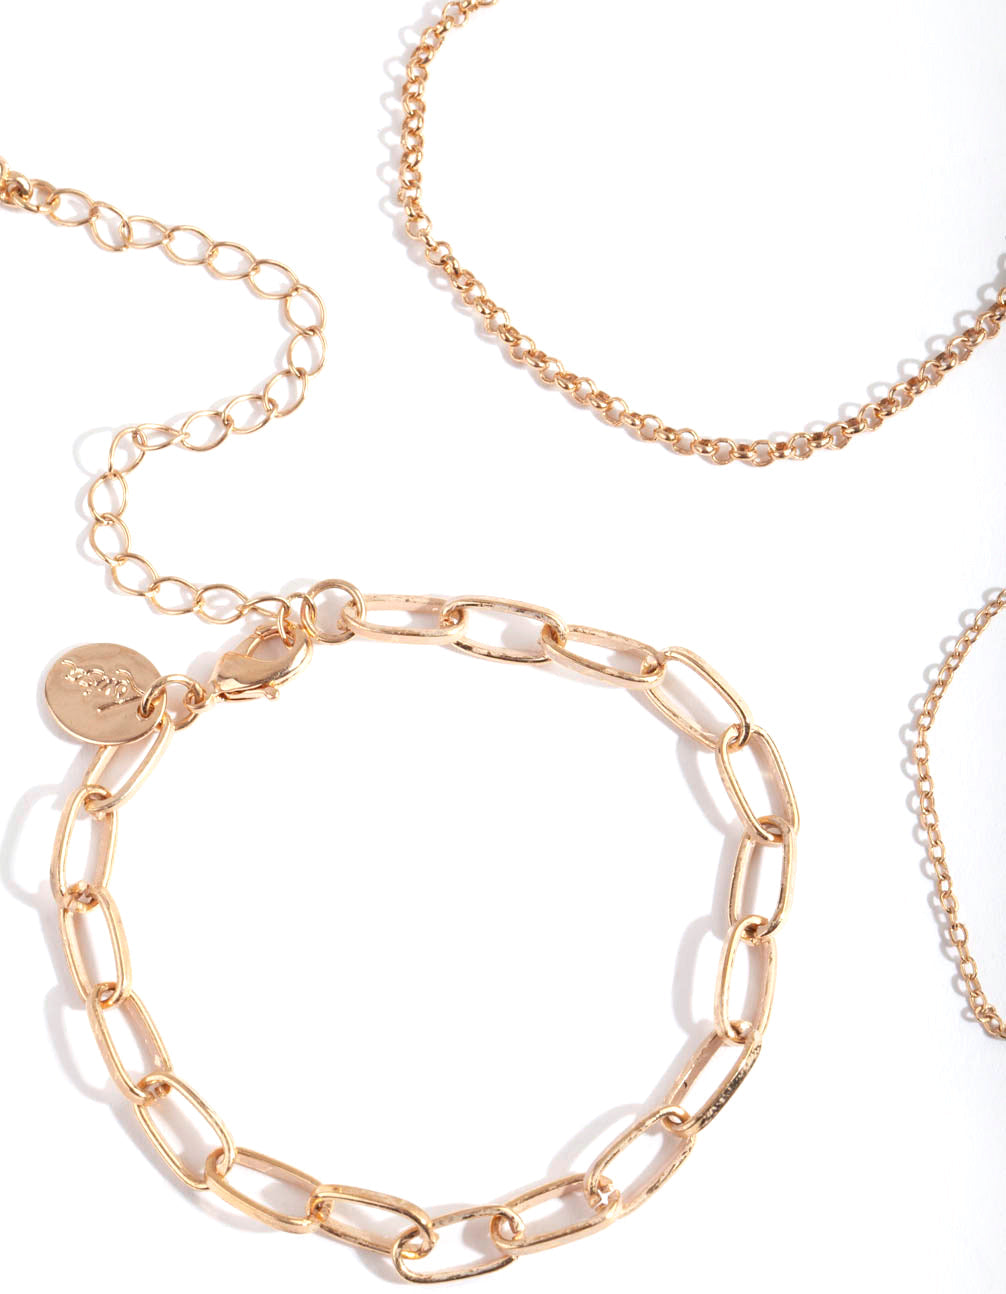 Gold Multi Link Chain Bracelet 3 Pack